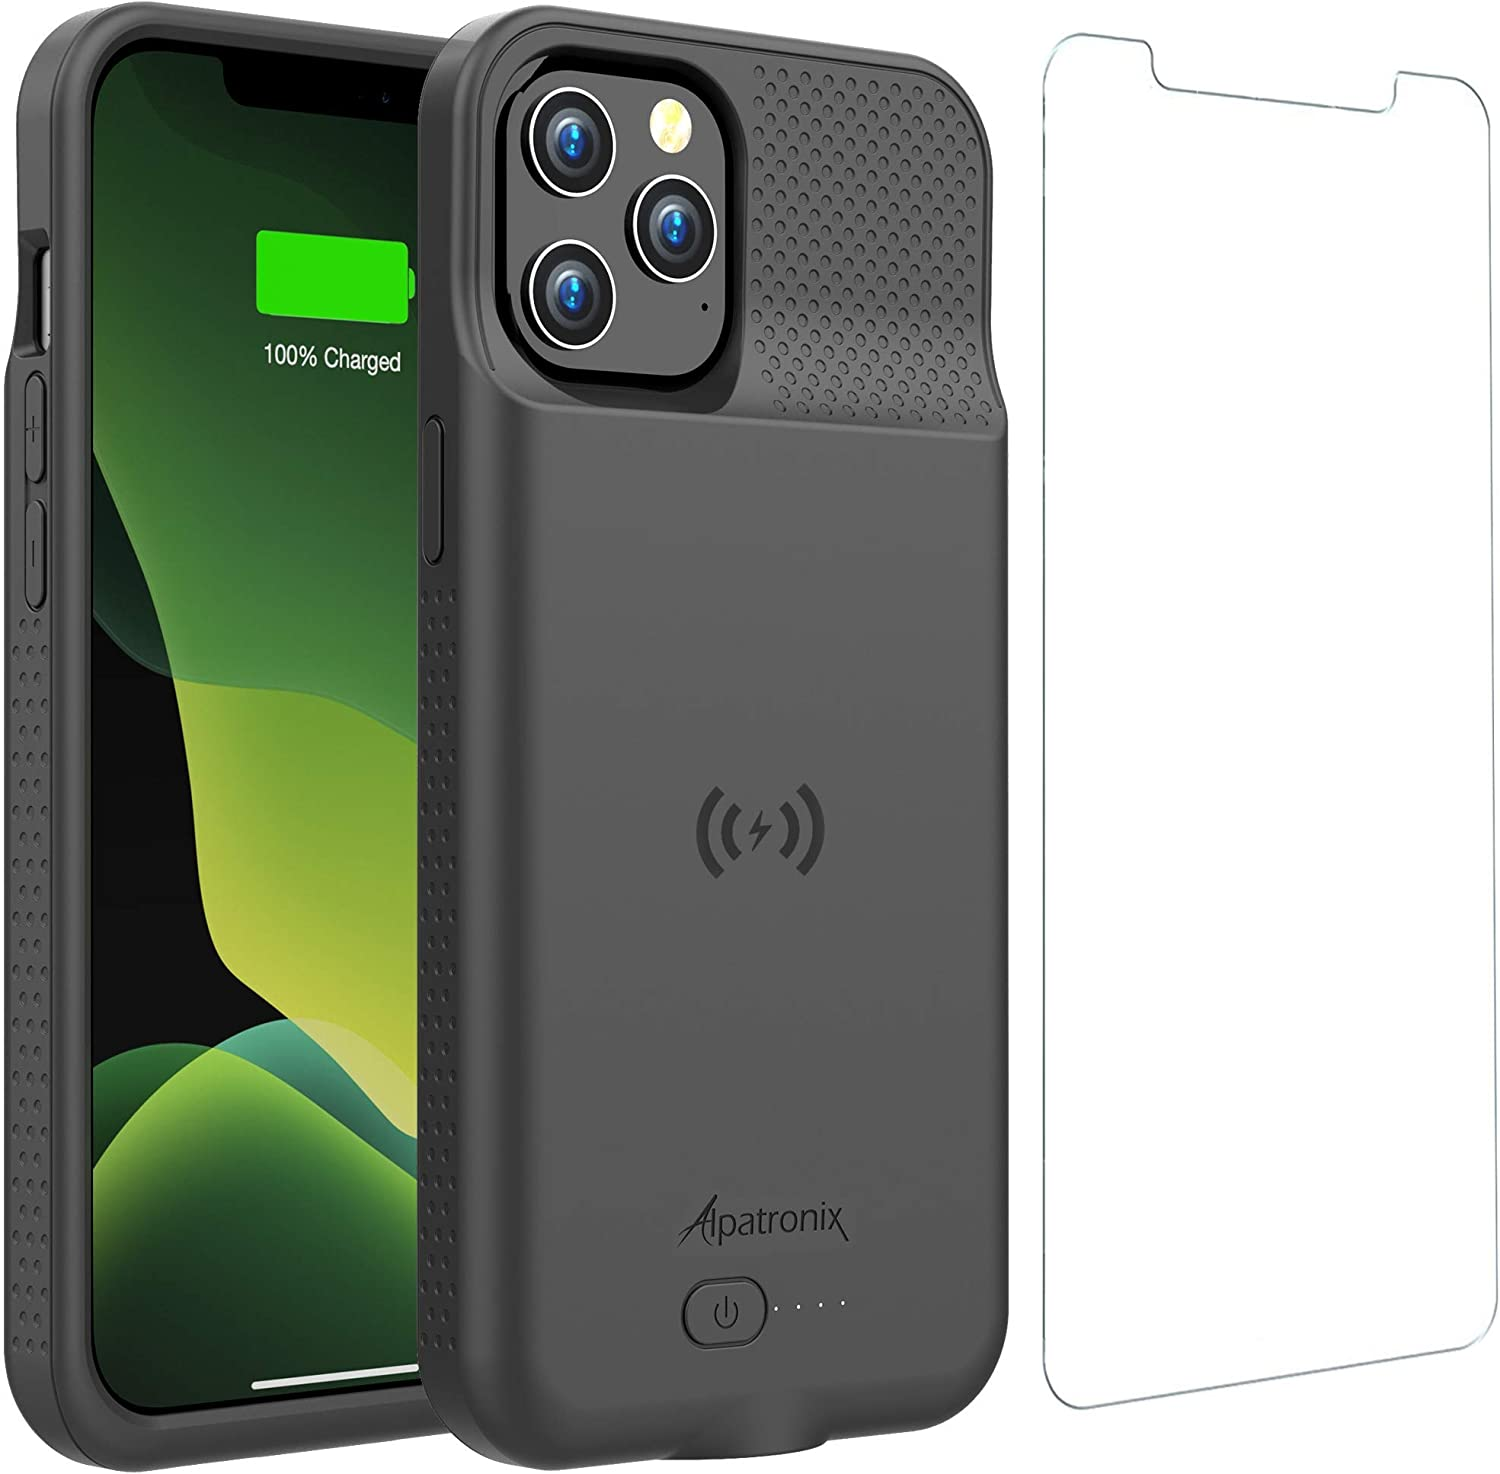 Battery Case for iPhone 12 Pro Max, 6000mAh Slim Portable Protective Extended Charger Cover with Wireless Charging Compatible with iPhone 12 Pro Max (6.7 inch) - BX12Pro Max (Matte Black)